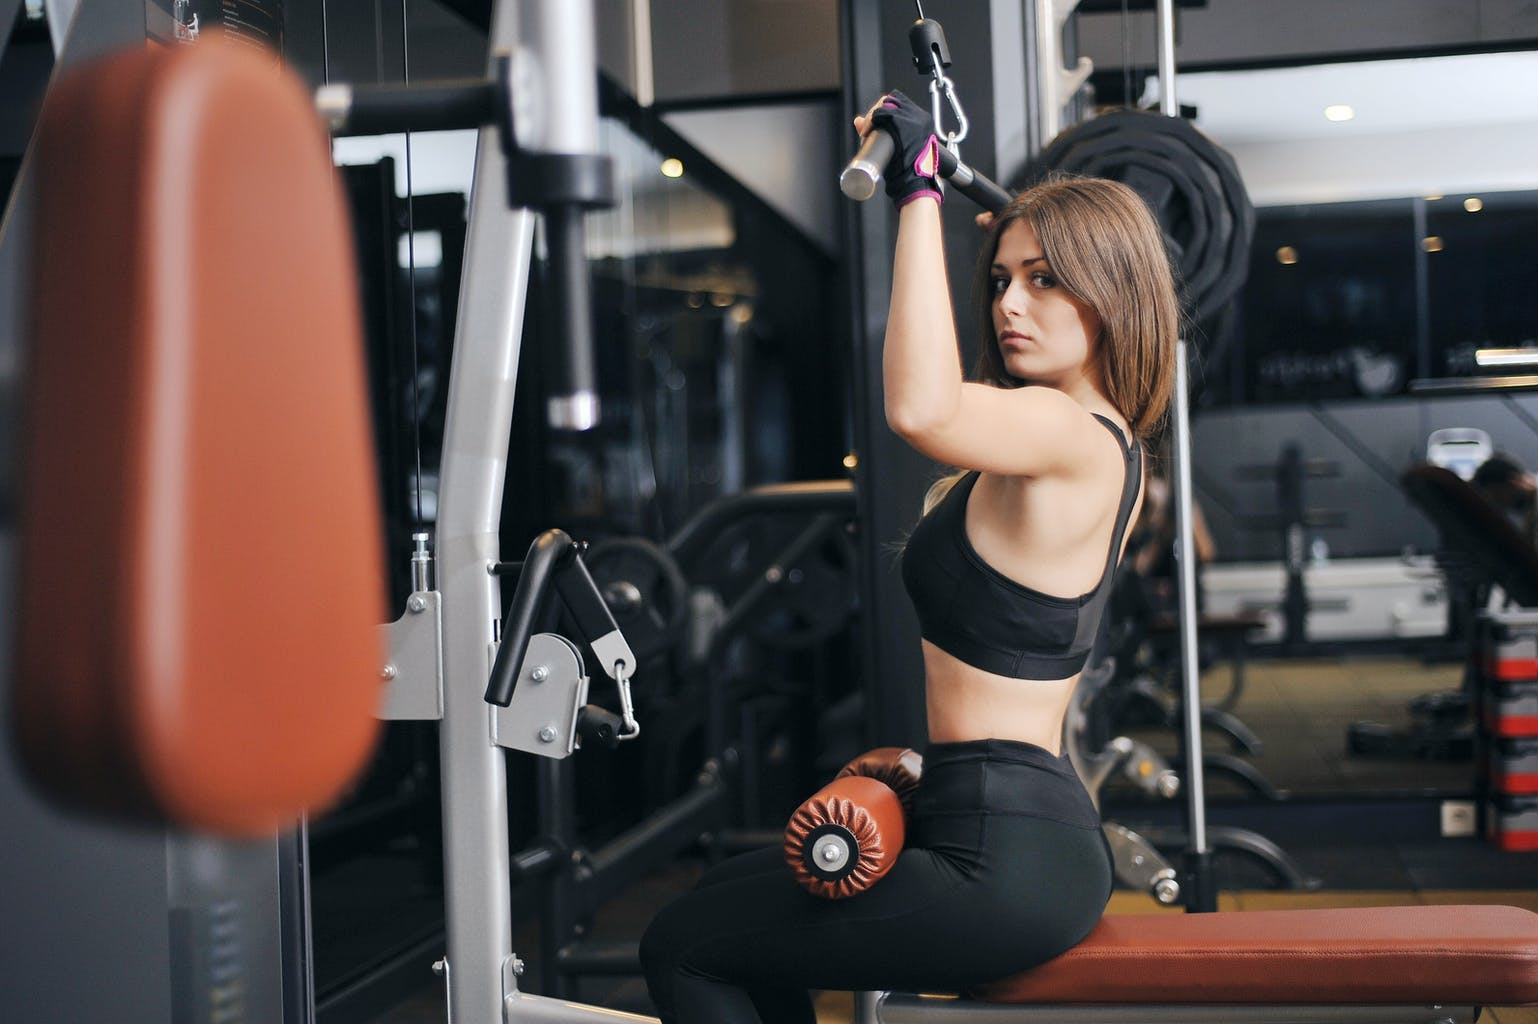 seema.com, seema network, seema weekly, seema app, seema newsletter, seema for successful south asian women, at home workouts, workouts during the pandemic, workouts during cover-19, safe workouts, basics of a workout